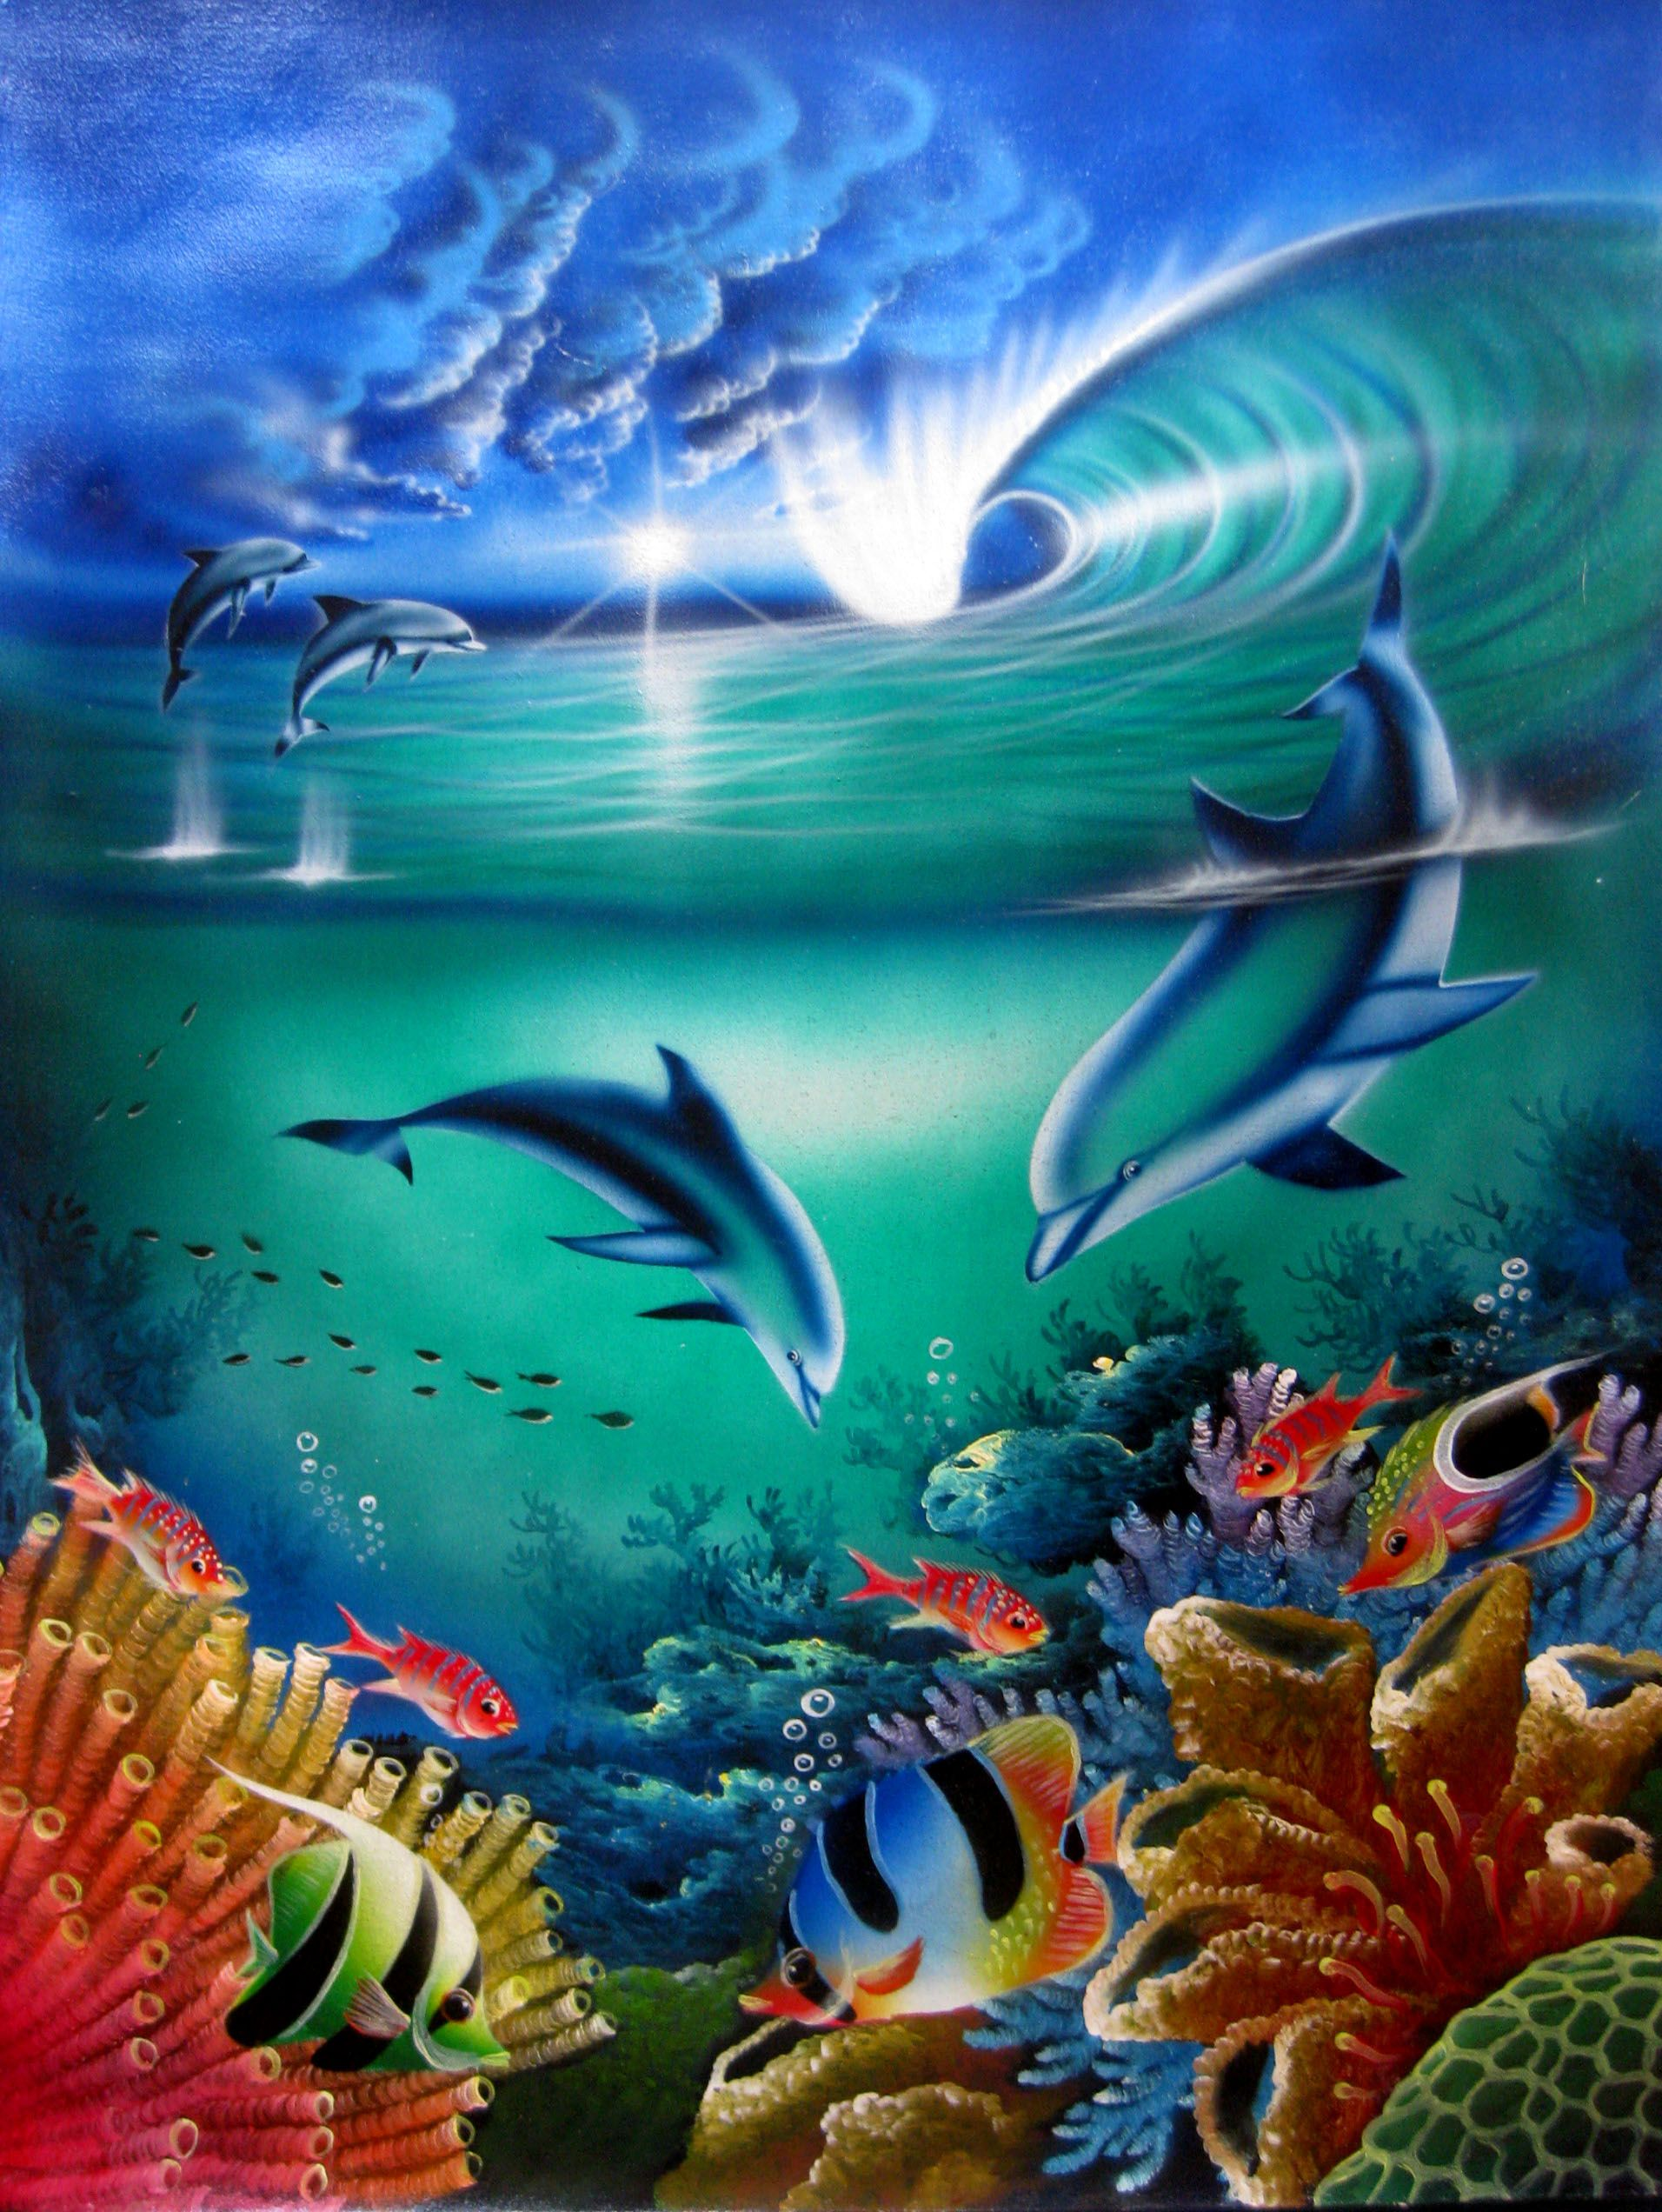 Ocean Art Seascapes Gallery For Sale amp Dolphins Sealife